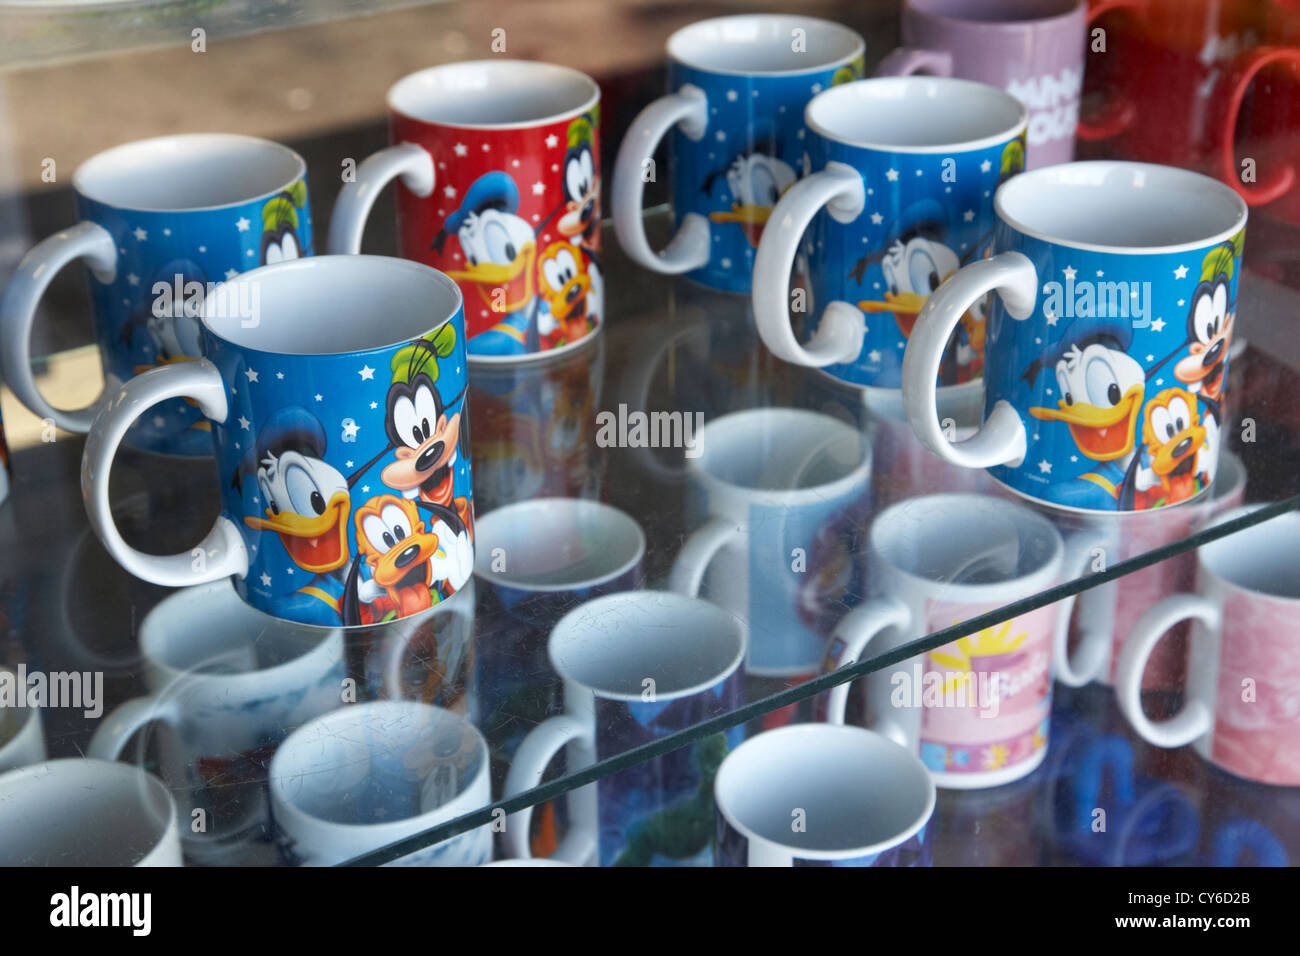 disney character mugs for sale in a souvenir shop florida usa - Stock Image